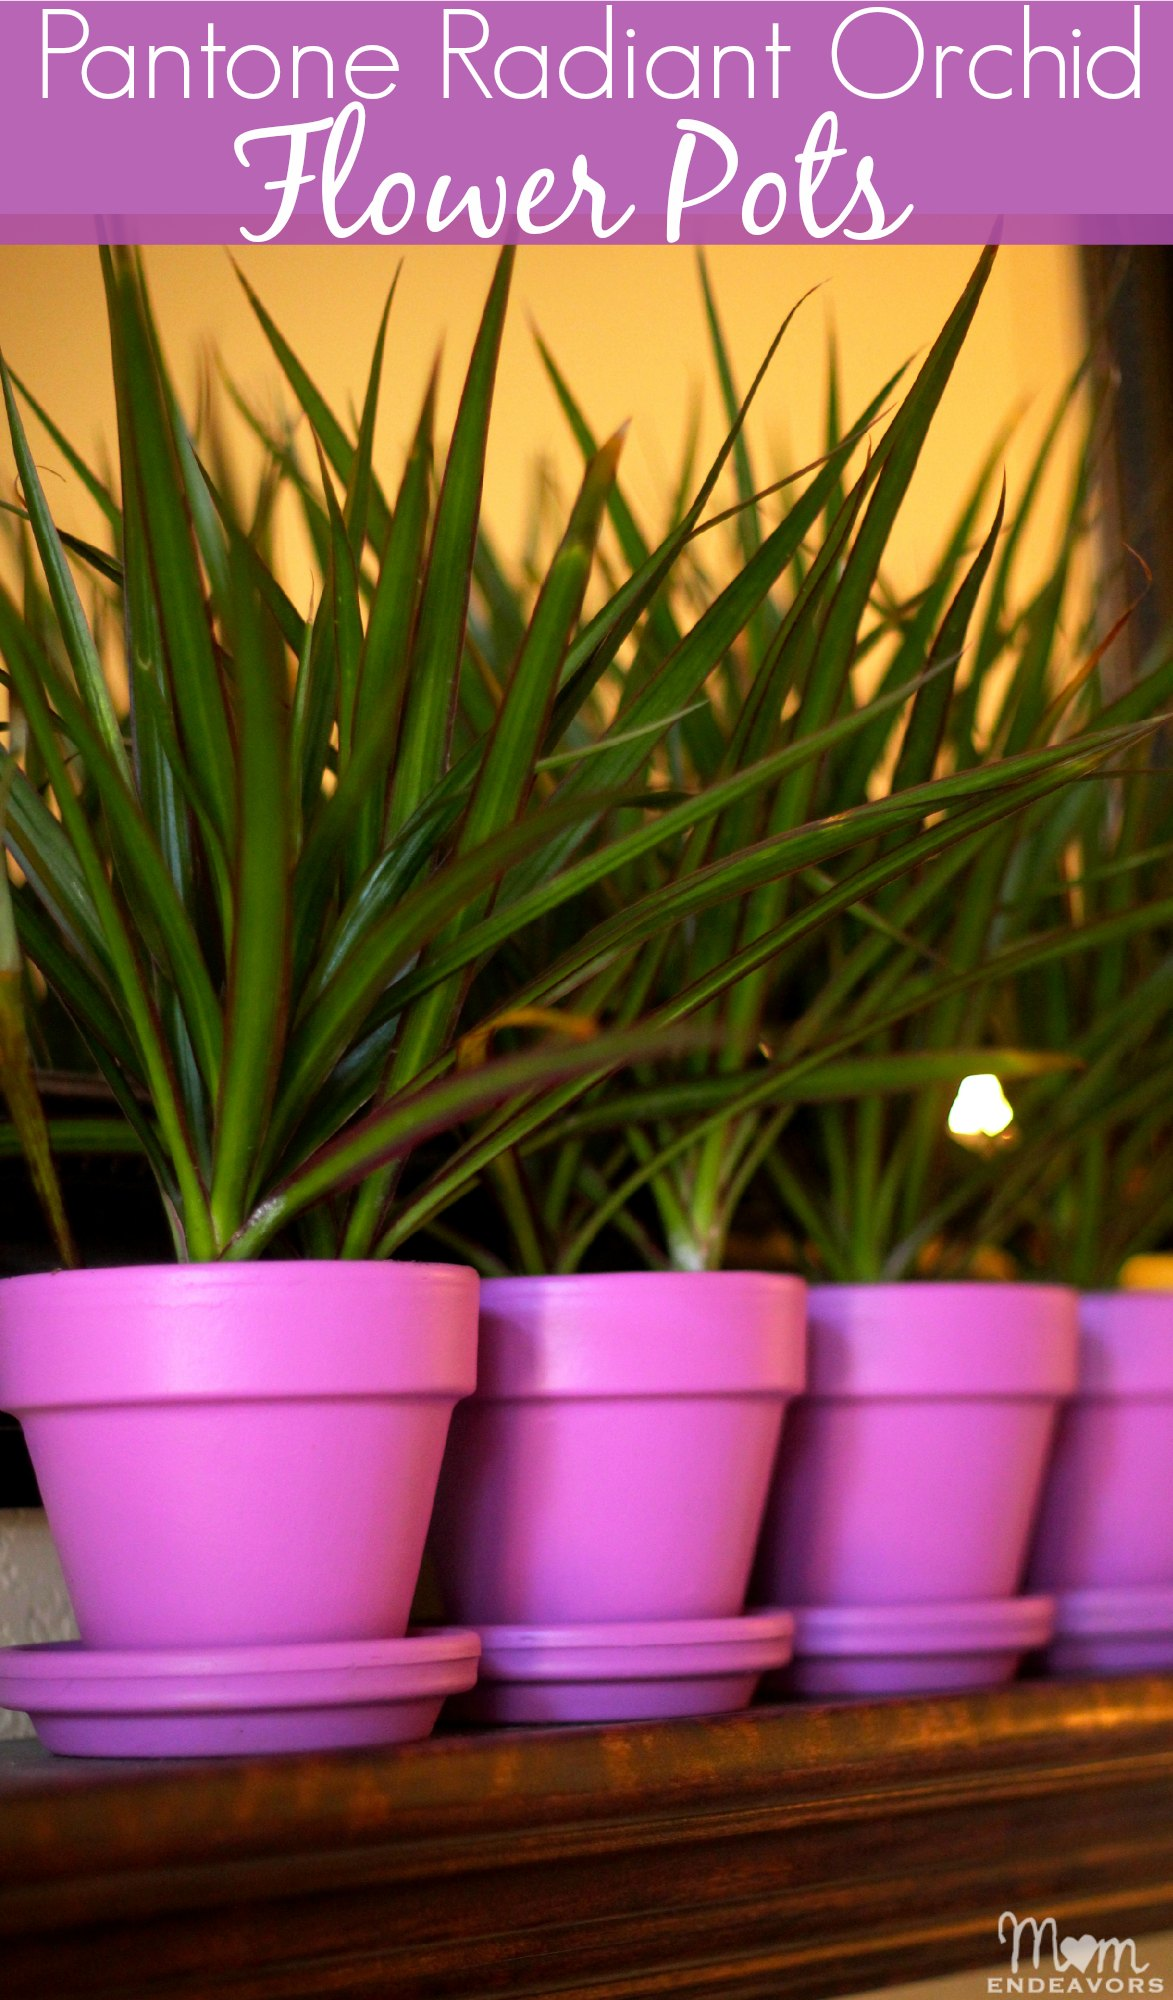 Pantone Color of the Year Radiant Orchid Flower Pots